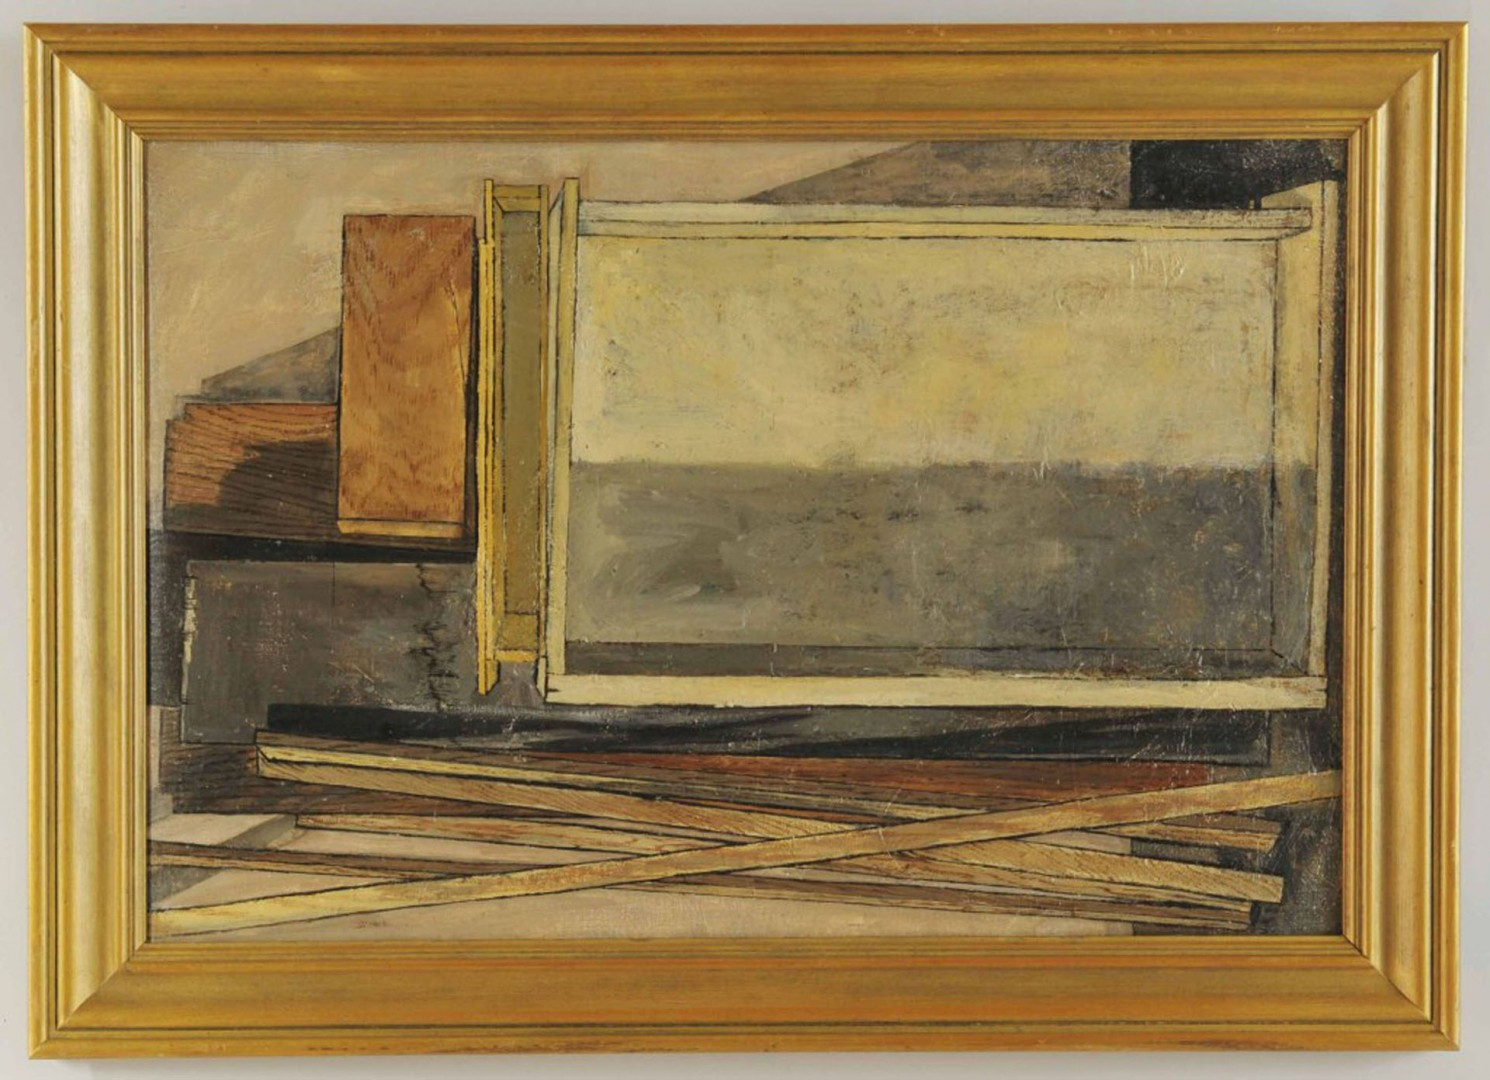 Lot 407: Contemporary Still Life, Oil on Canvas